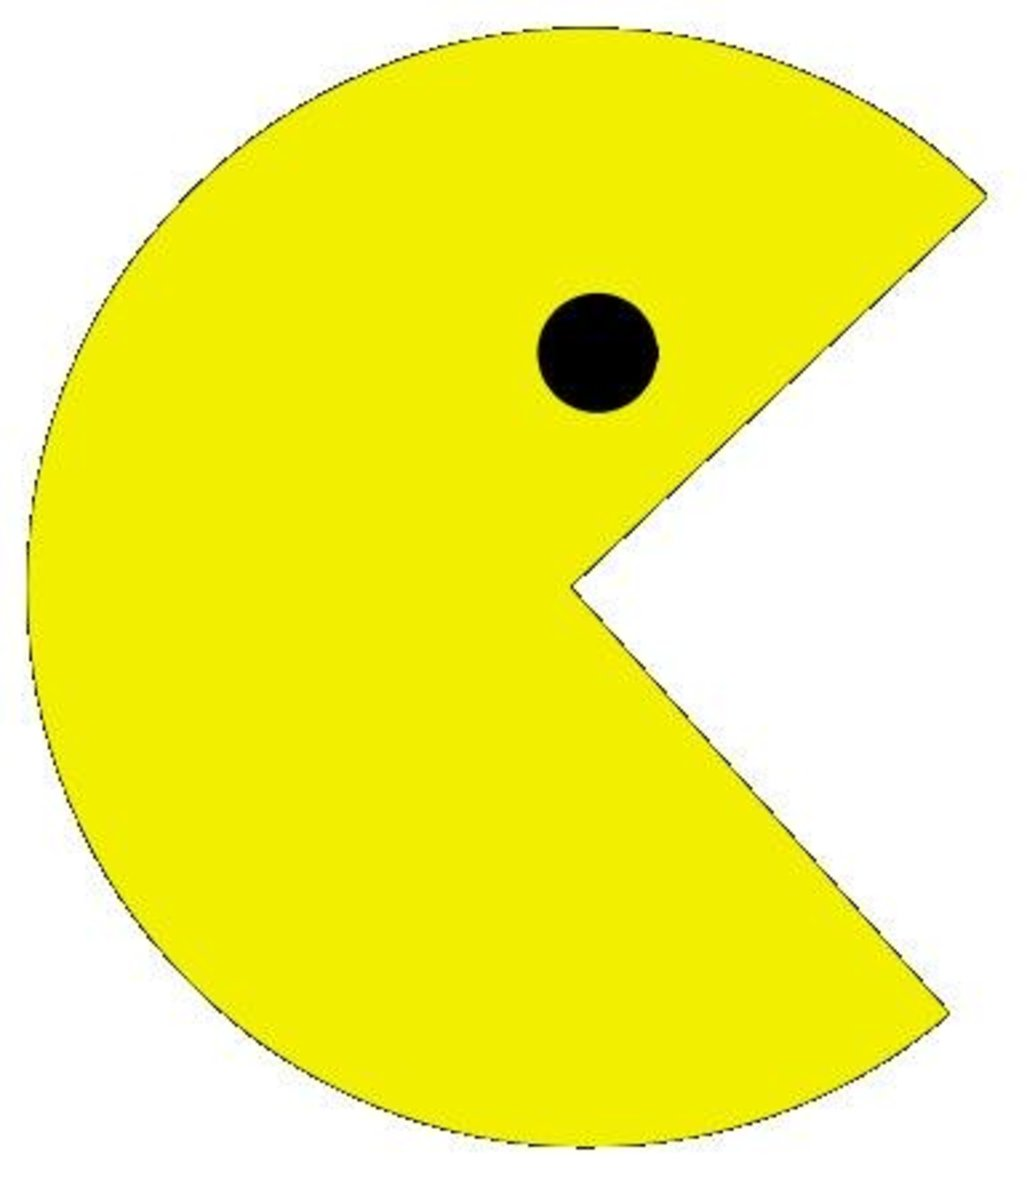 Pacman is one of the most iconic game characters of all time...